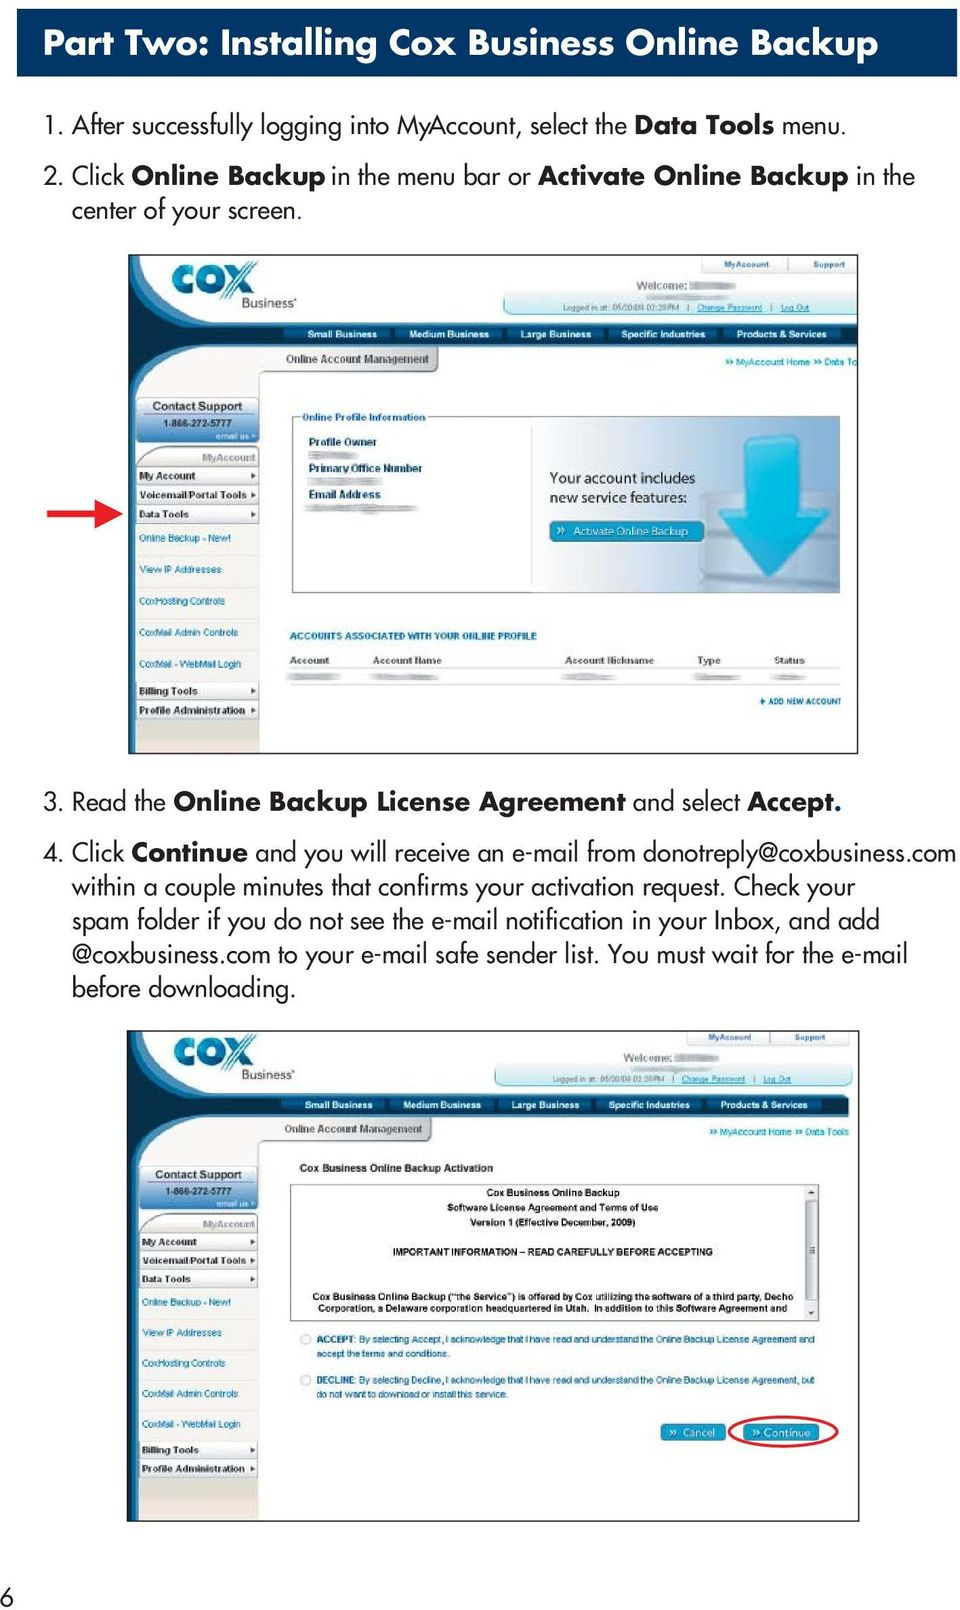 Read the Online Backup License Agreement and select Accept. 4. Click Continue and you will receive an e-mail from donotreply@coxbusiness.